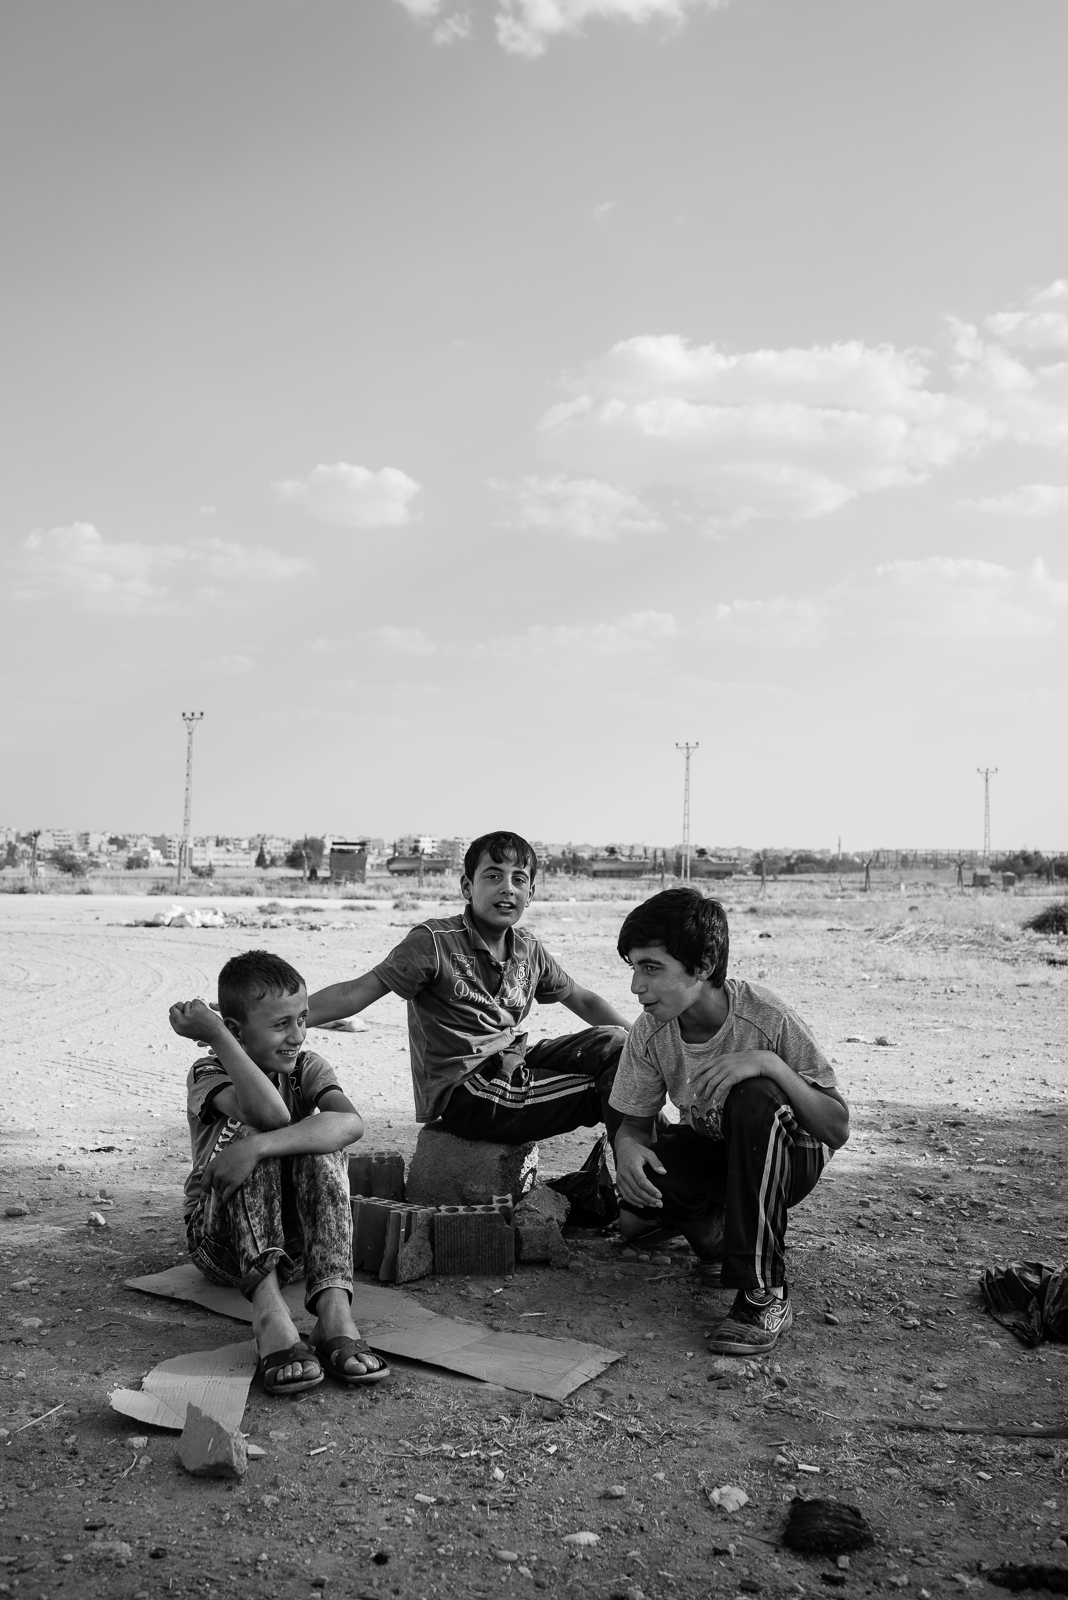 Children are playing in front of the Al Qamishli border